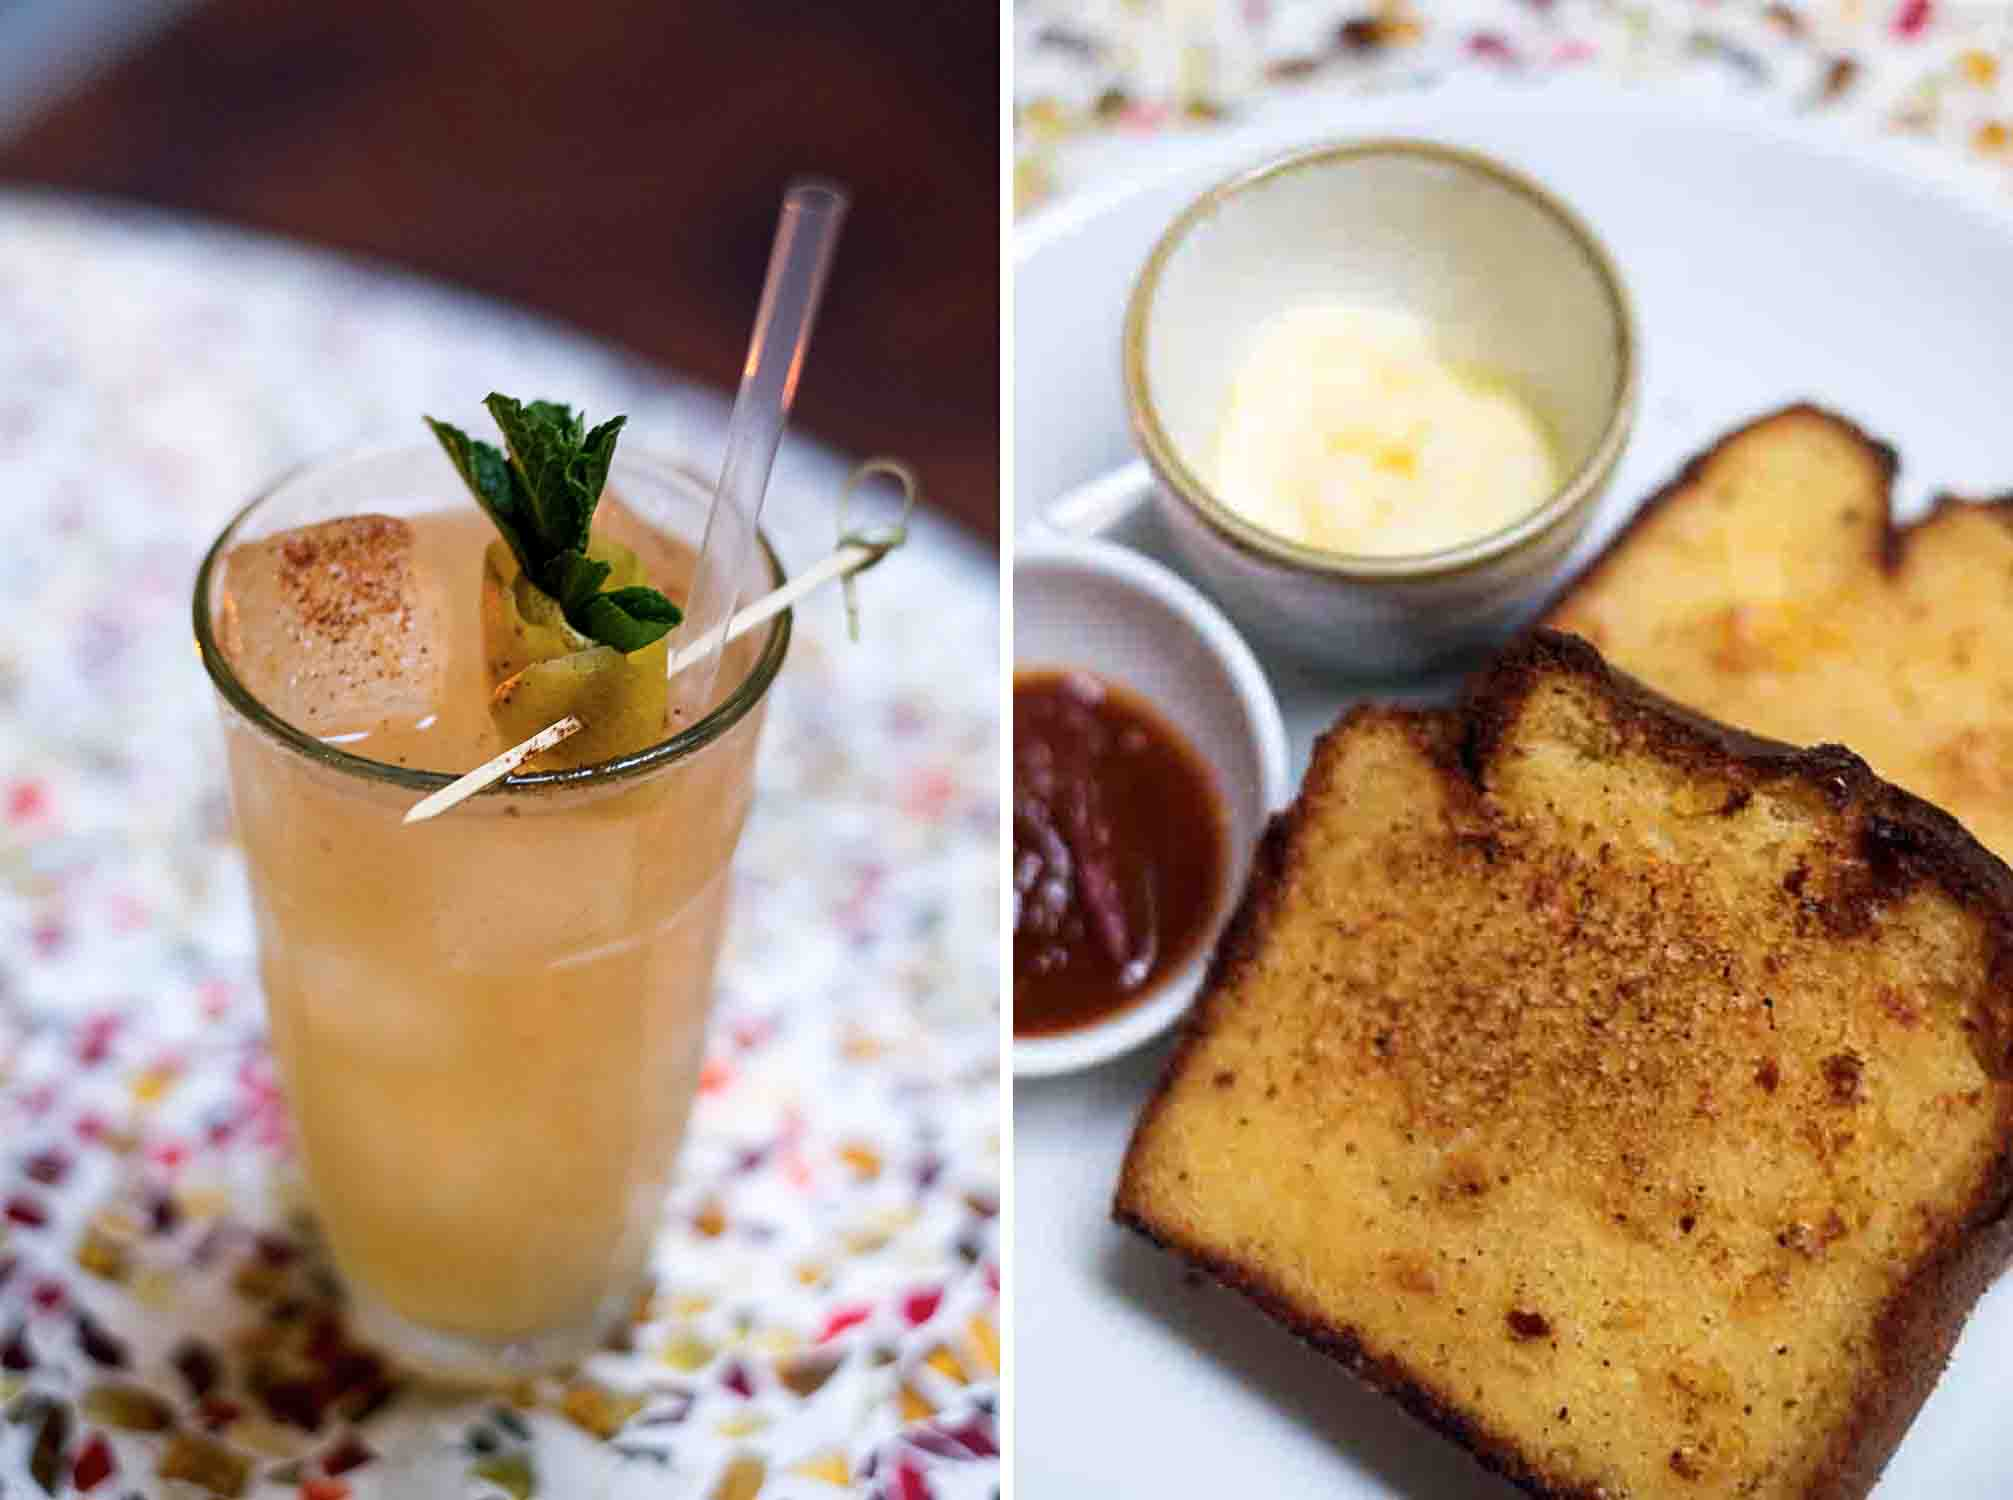 Red Rooster restaurant in Shoreditch, London by New York chef and restaurateur Marcus Samuelsson